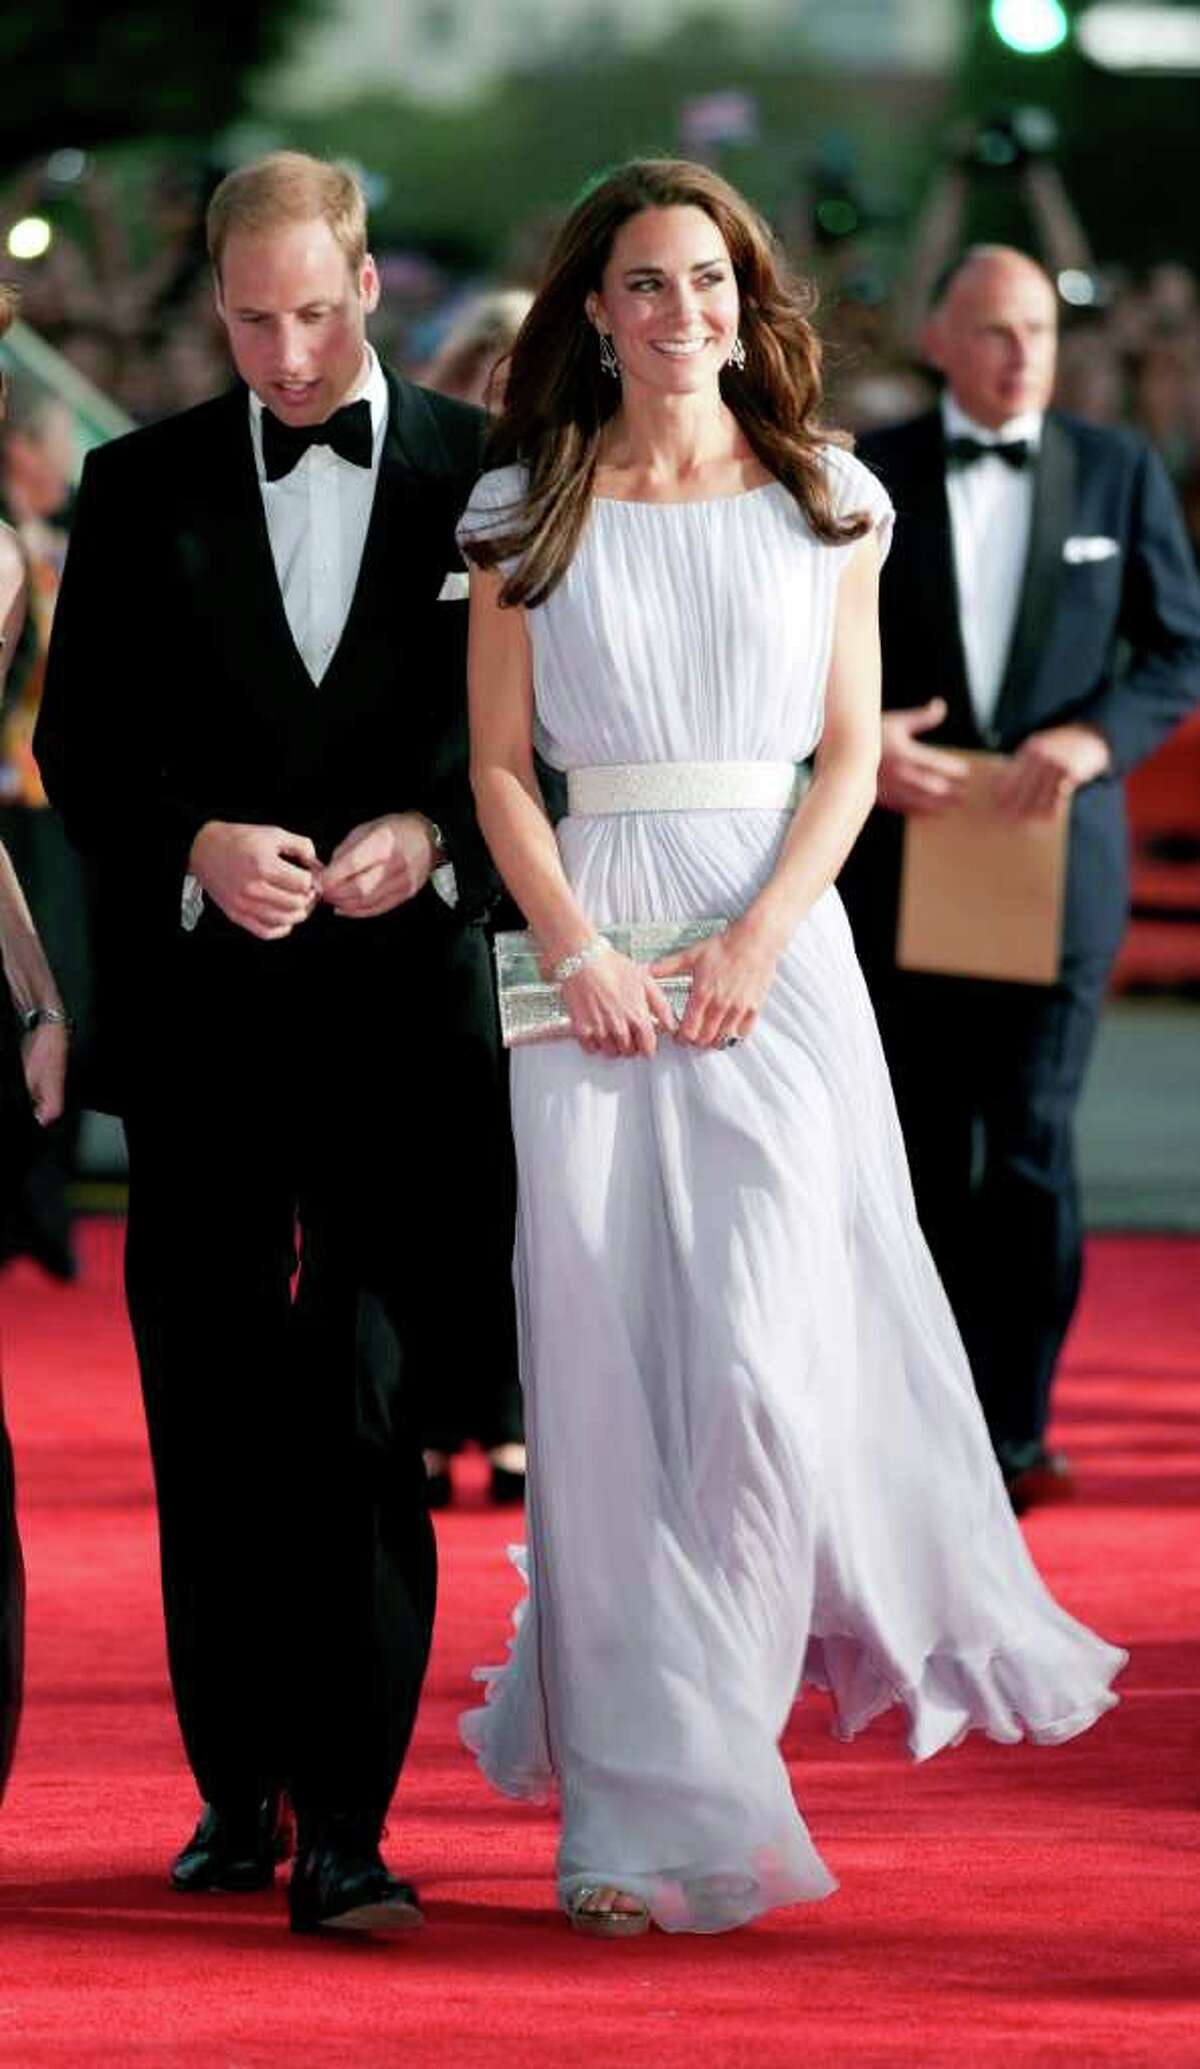 The Duchess of Cambridge stole the show, outshining Hollywood's A-List on the red carpet at the BAFTA